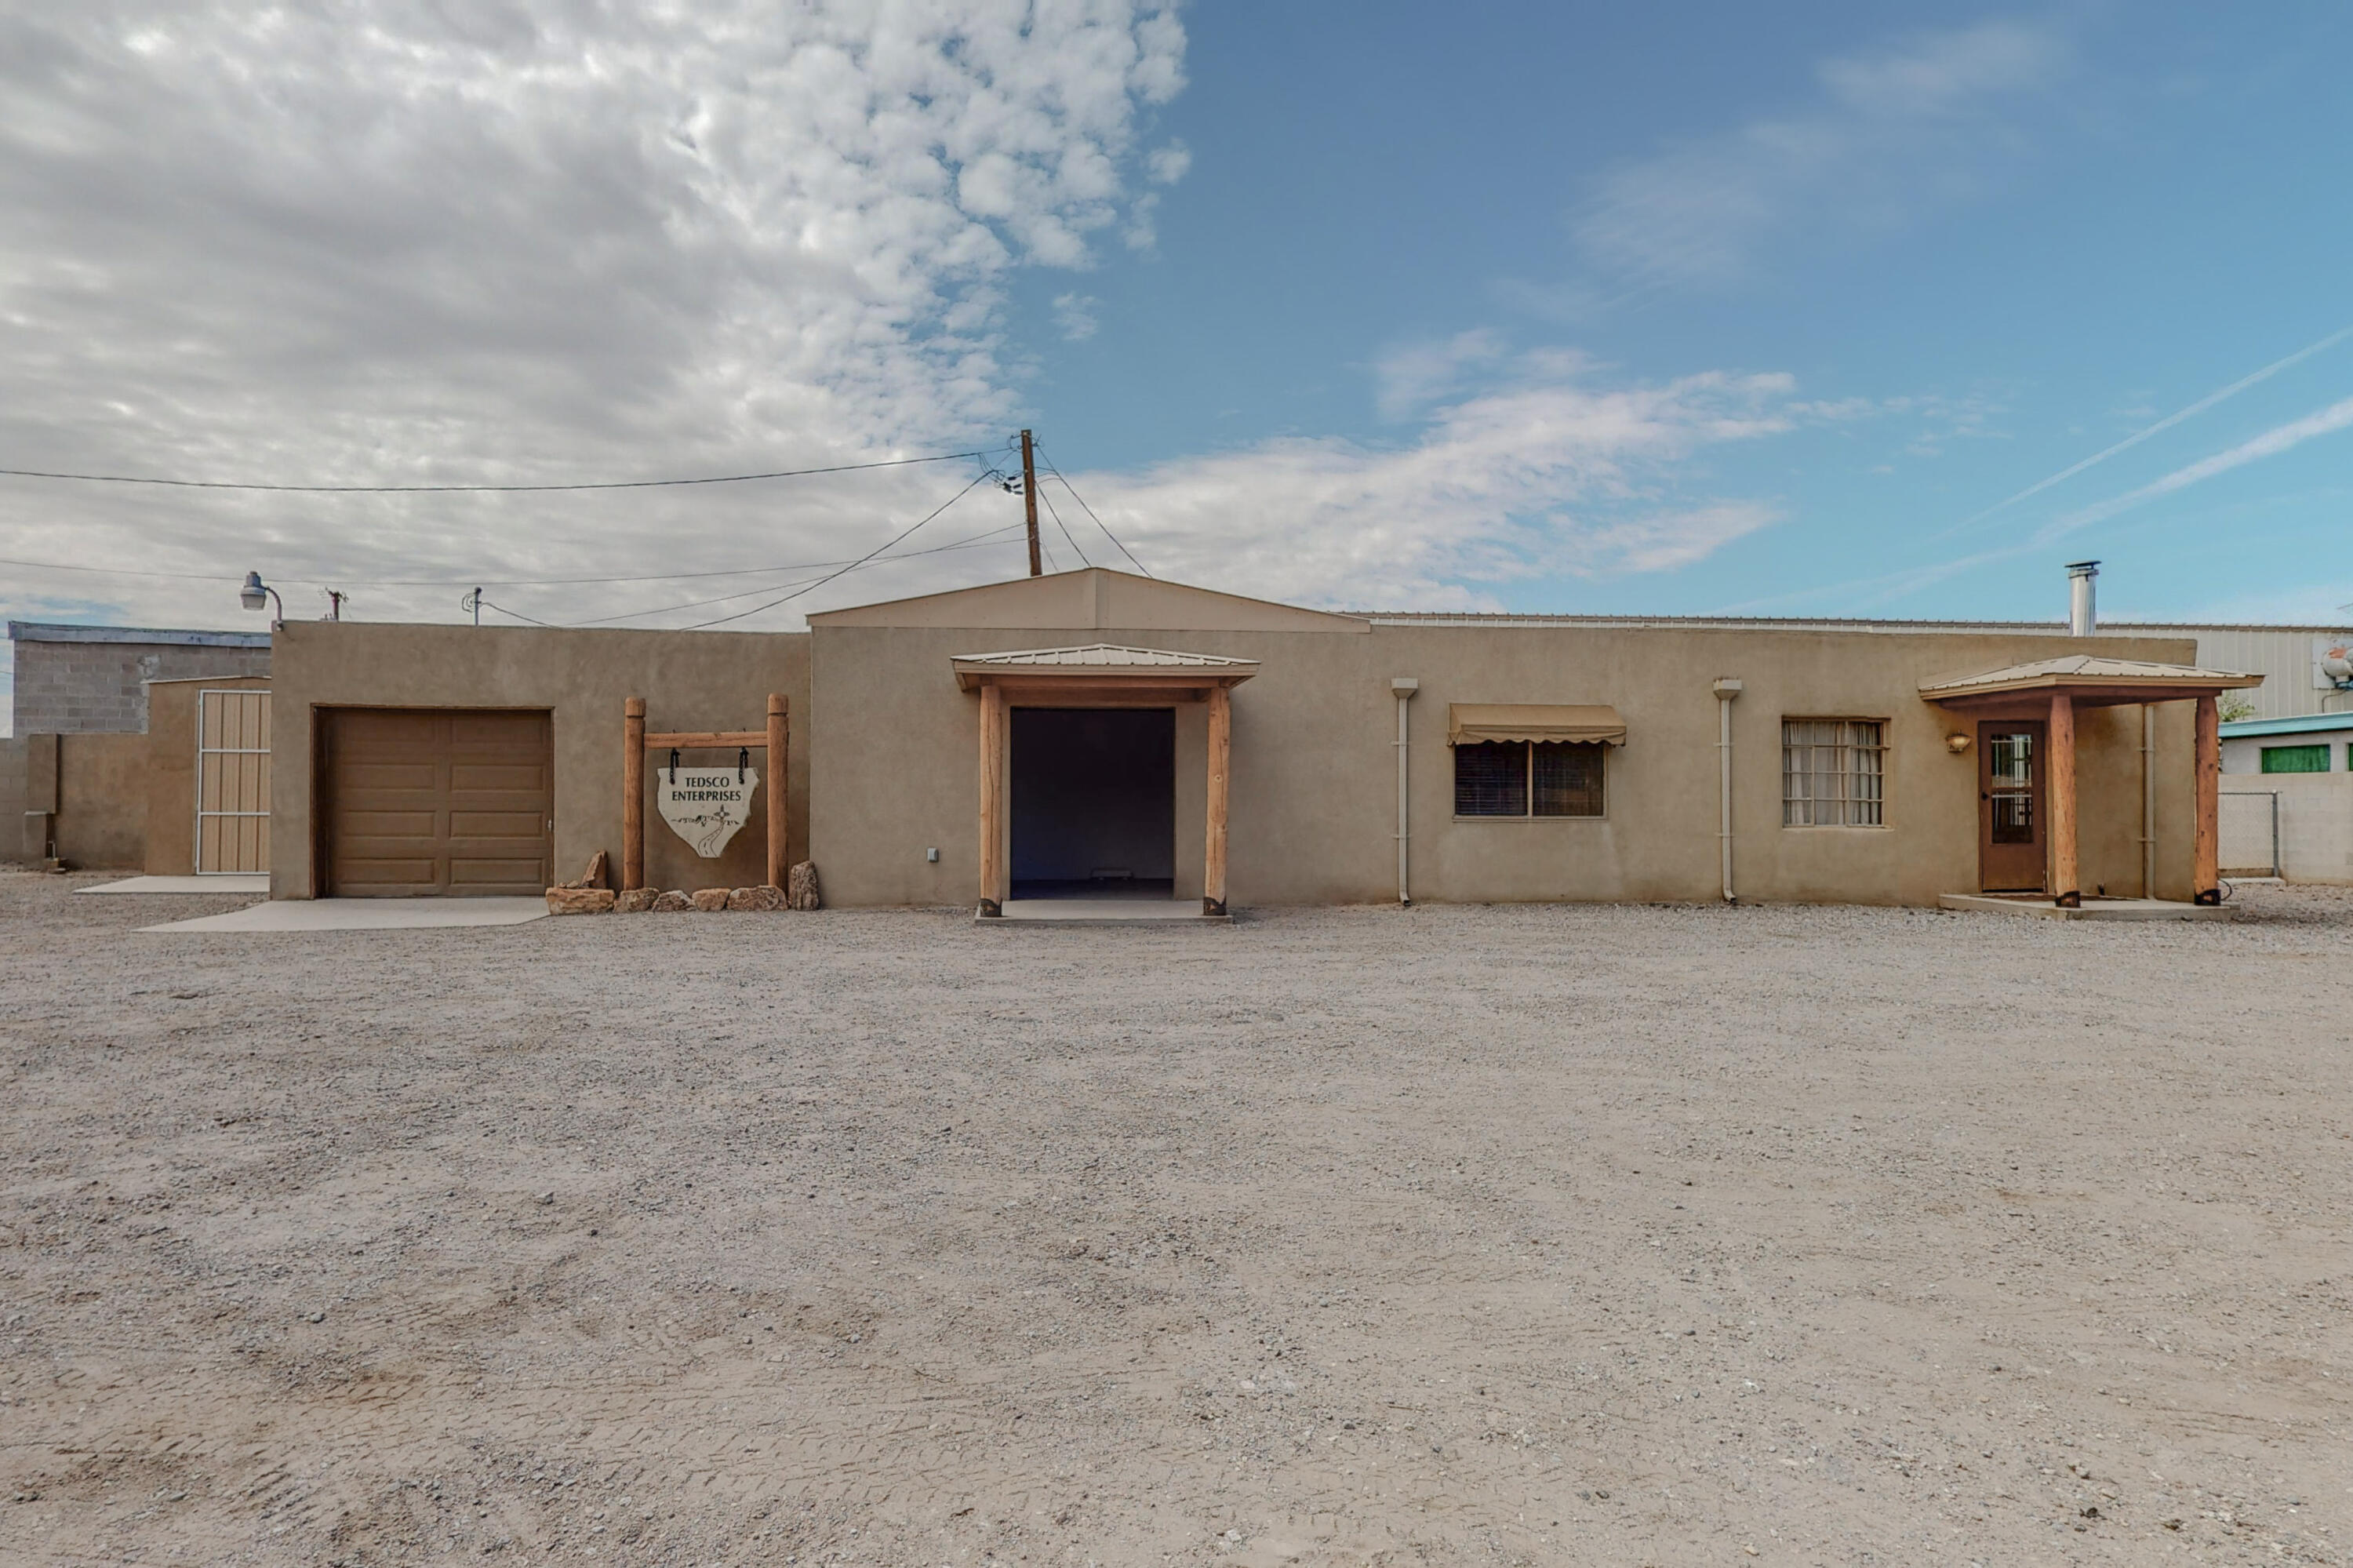 Incredible live/work space!  Great Value in the SW Heights with tremendous potential on a huge lot! Two contiguous parcels included in this sale! Parcel addresses are 3229 Tower and 3221 Tower.  3229 Tower has an oversized 1 car garage/workshop area, along with a kitchen, small office, 1 bedroom, and 1 living area.  200amp service, city water, private well.  Completely fenced with automatic gate.